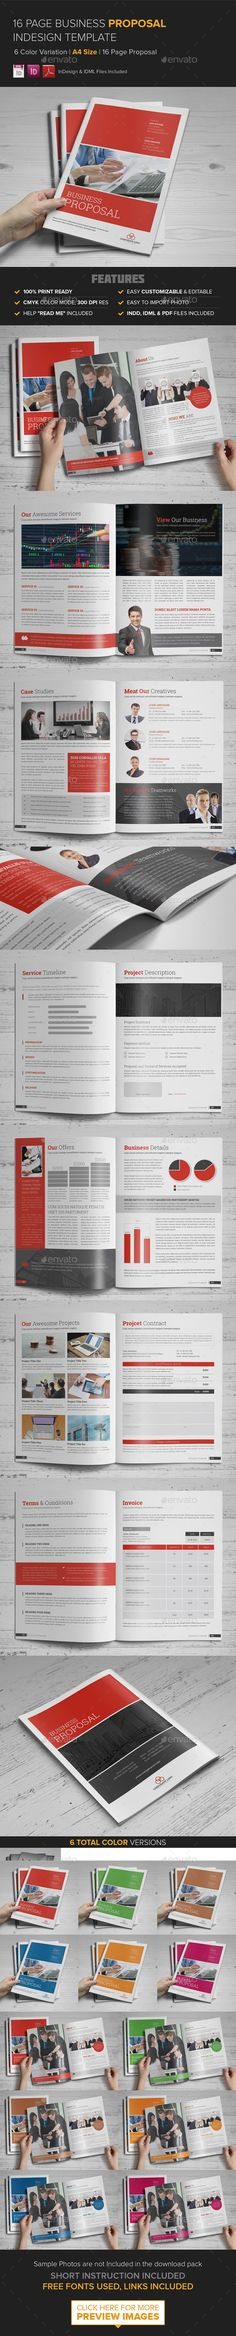 Buy Business Proposal InDesign Template by JanySultana on GraphicRiver. Business Proposal InDesign Template Ready to use for Project proposal, Business proposal, Multipurpose Proposal. Brochure Layout, Corporate Brochure, Business Brochure, Design Brochure, Stencil Templates, Indesign Templates, Print Templates, Project Proposal Template, Proposal Templates